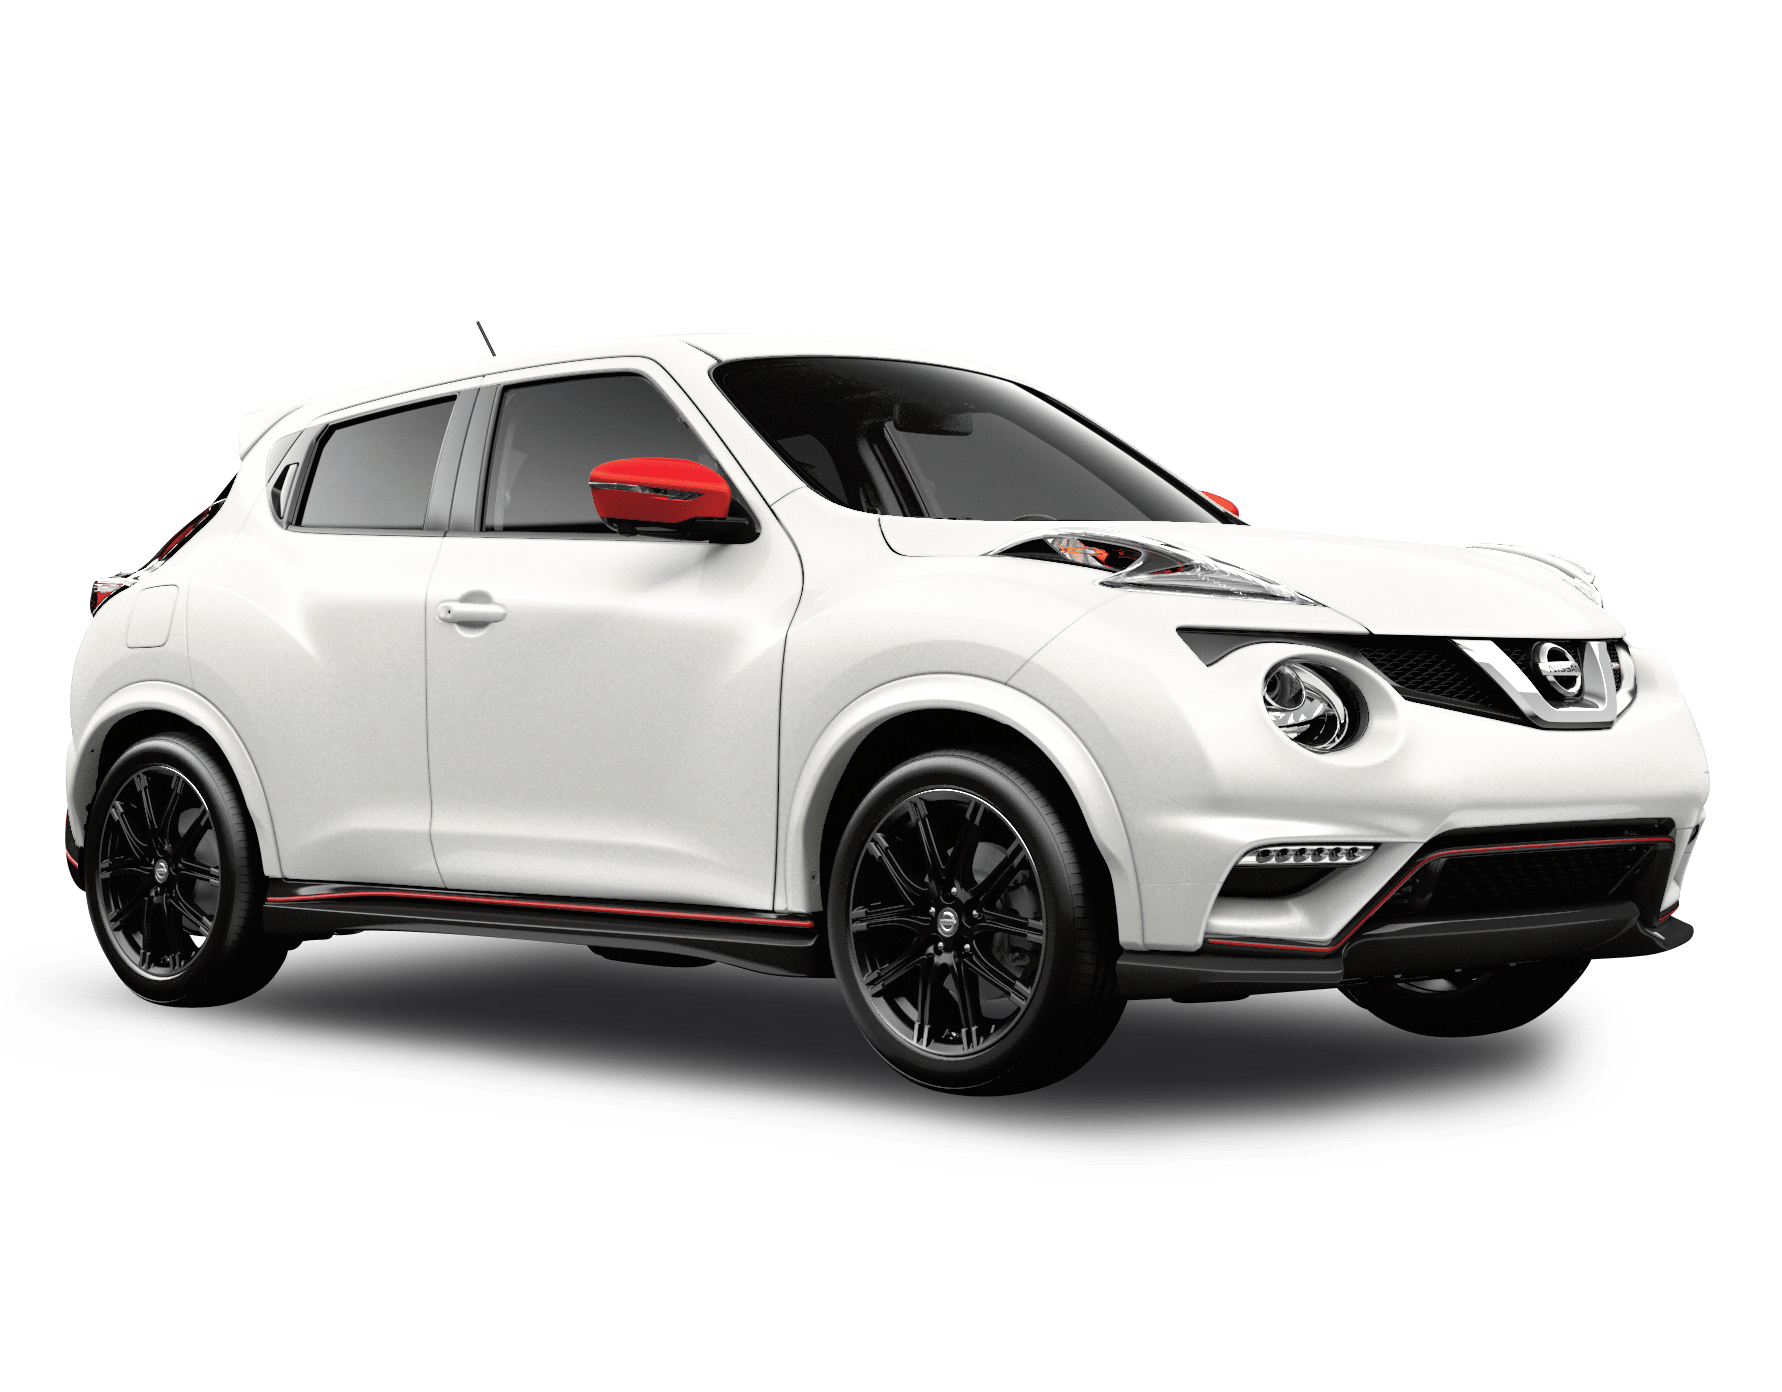 prices wagon specs front overview exterior fwd photos the ratings angular price and review car sl l juke connection cvt nissan view